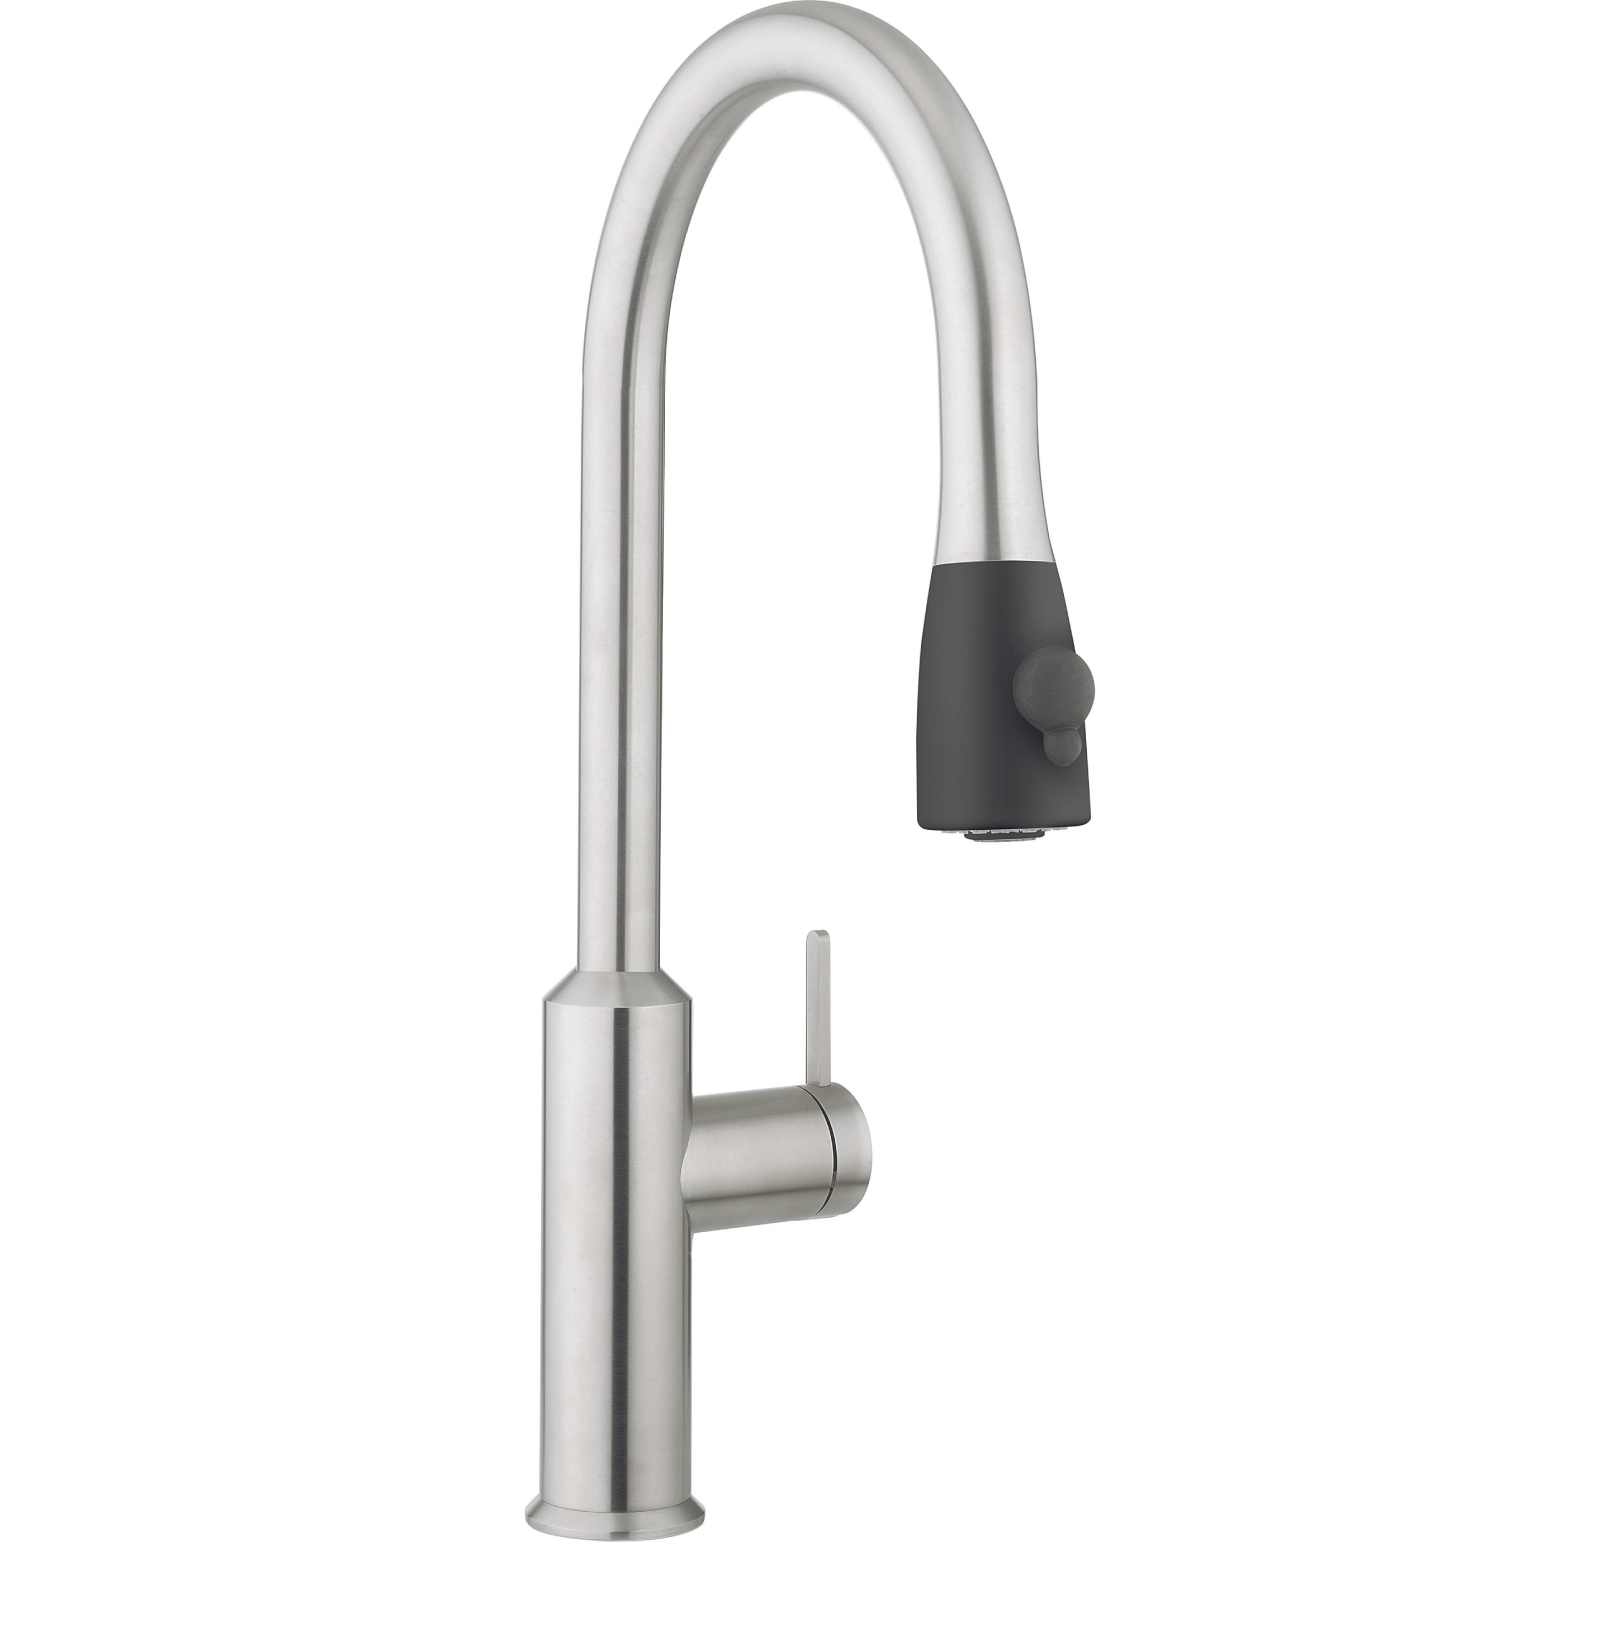 Crosswater cook side lever kitchen mixer with pull out spray stainless steel co717ds - Luisina mixer ...